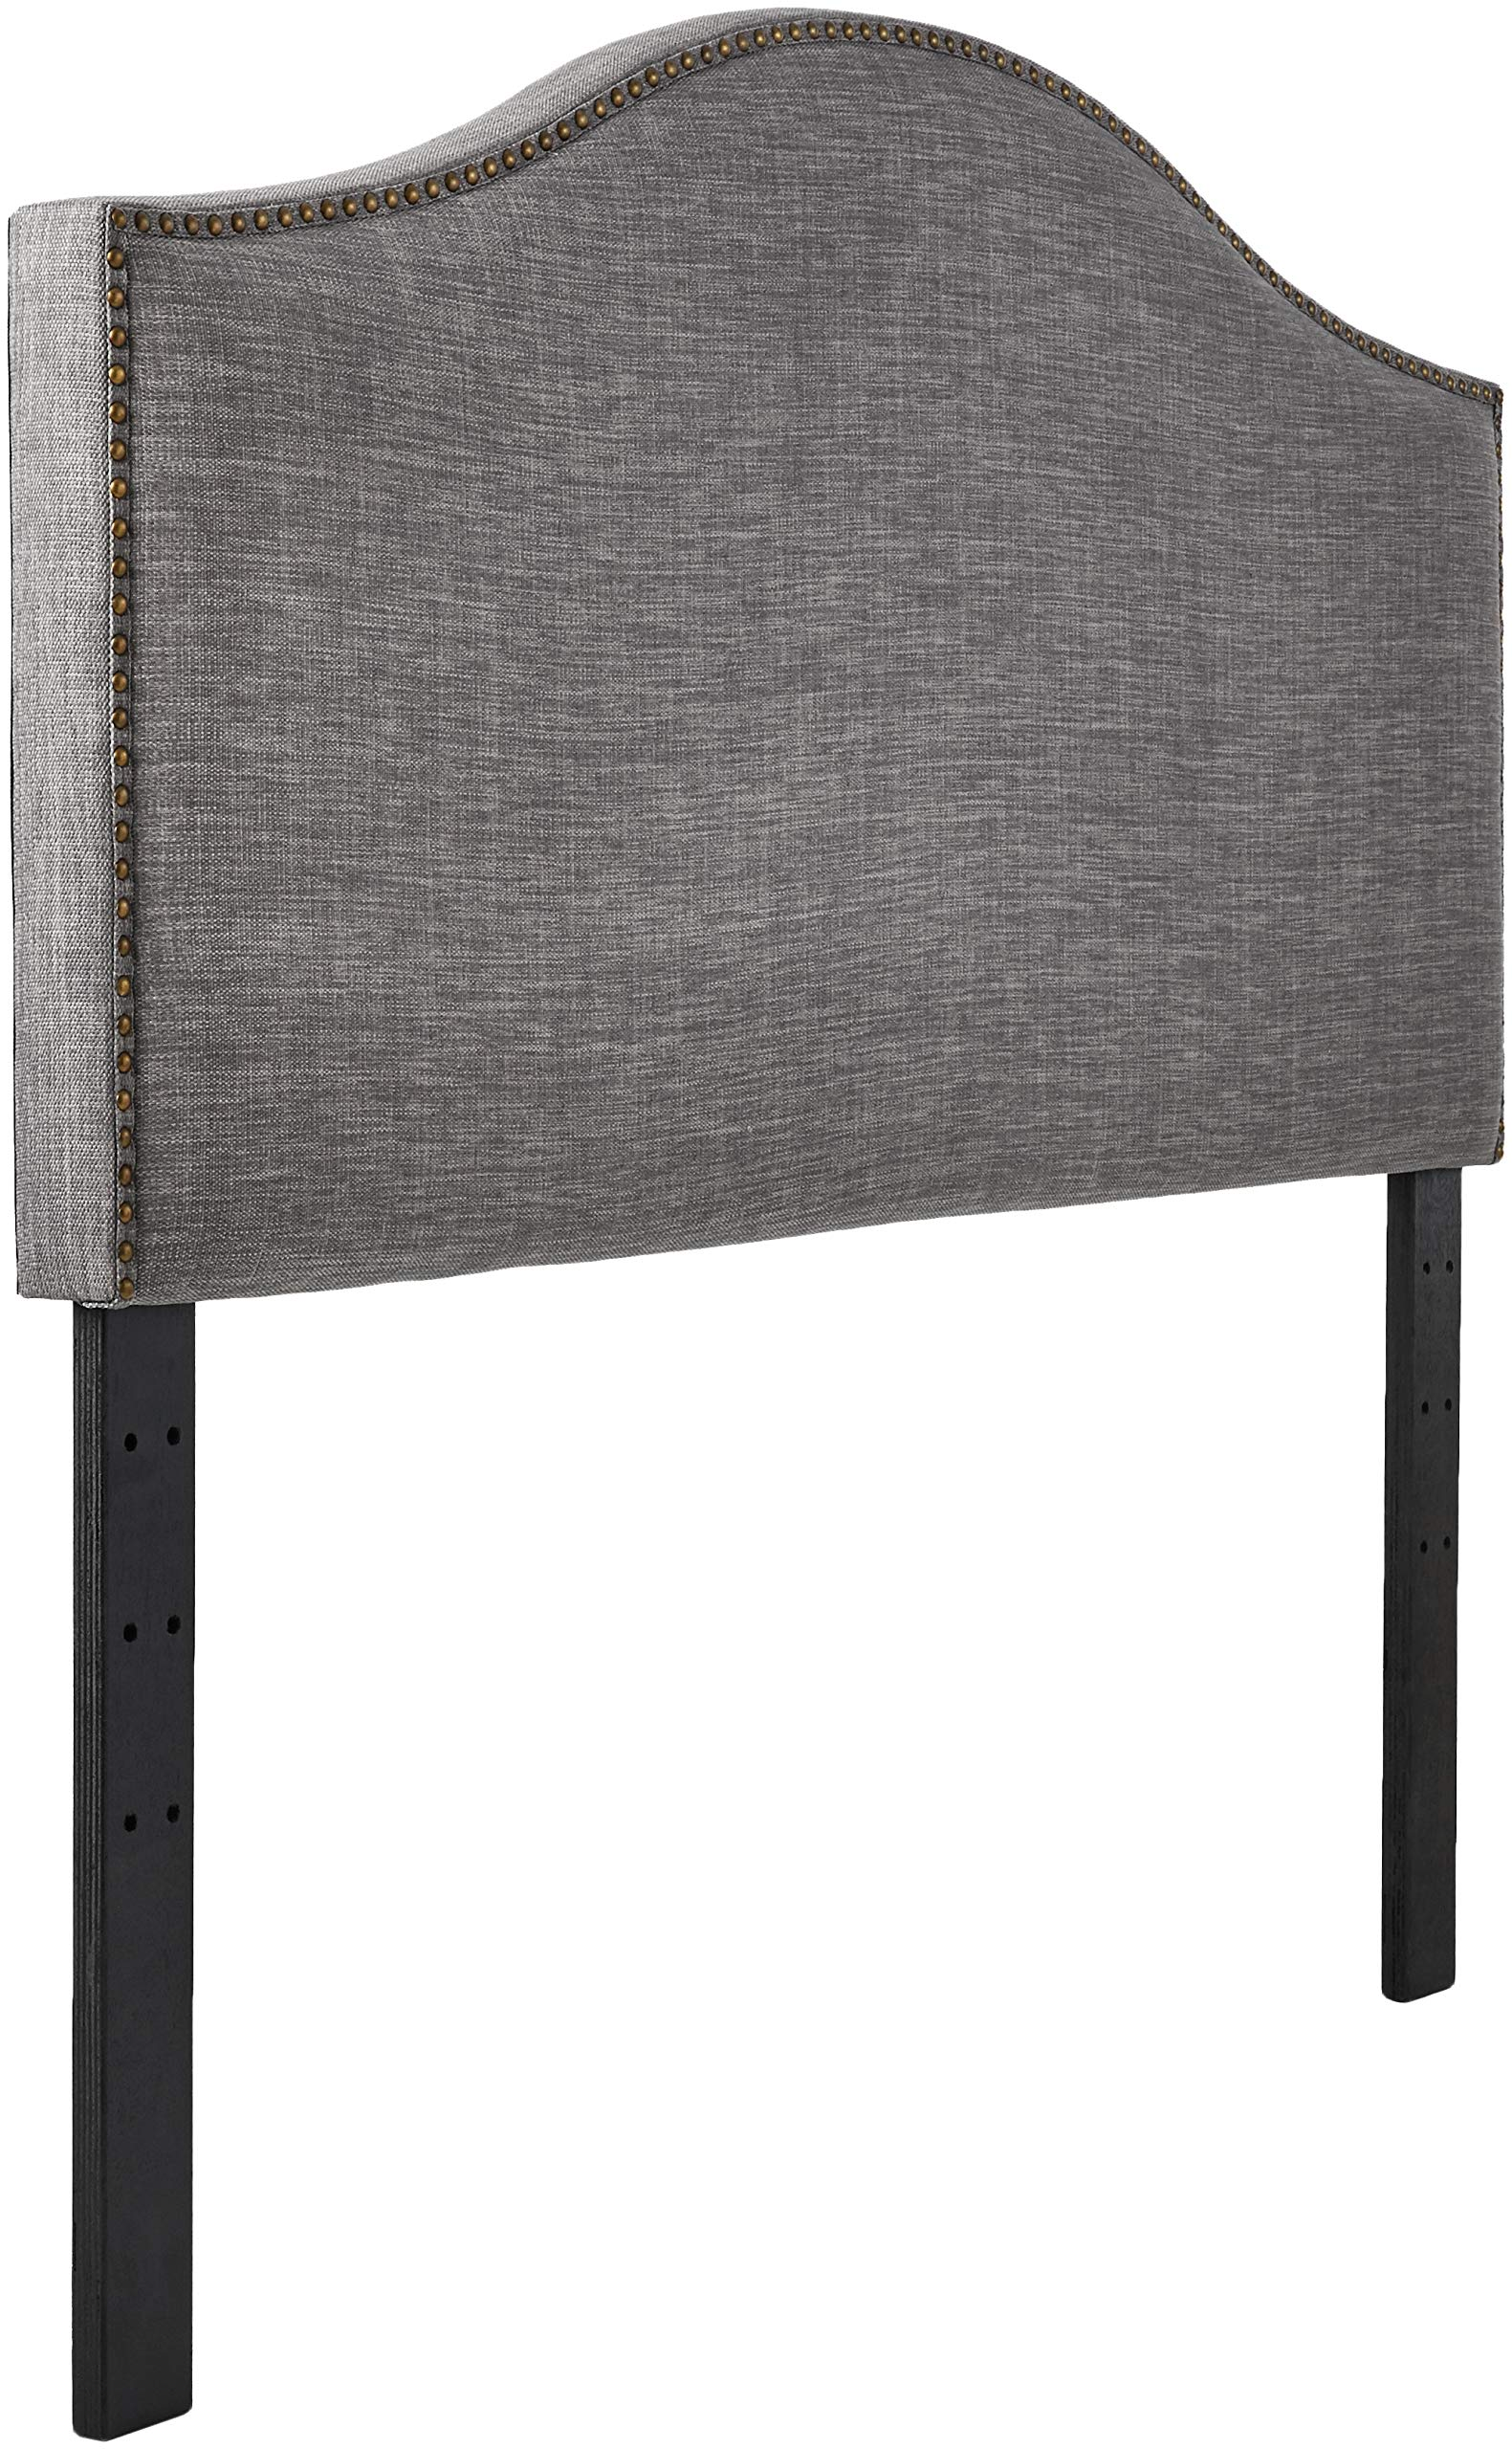 Ravenna Home Haraden Modern Curved-Top King Headboard, 82''W, Grey by Ravenna Home